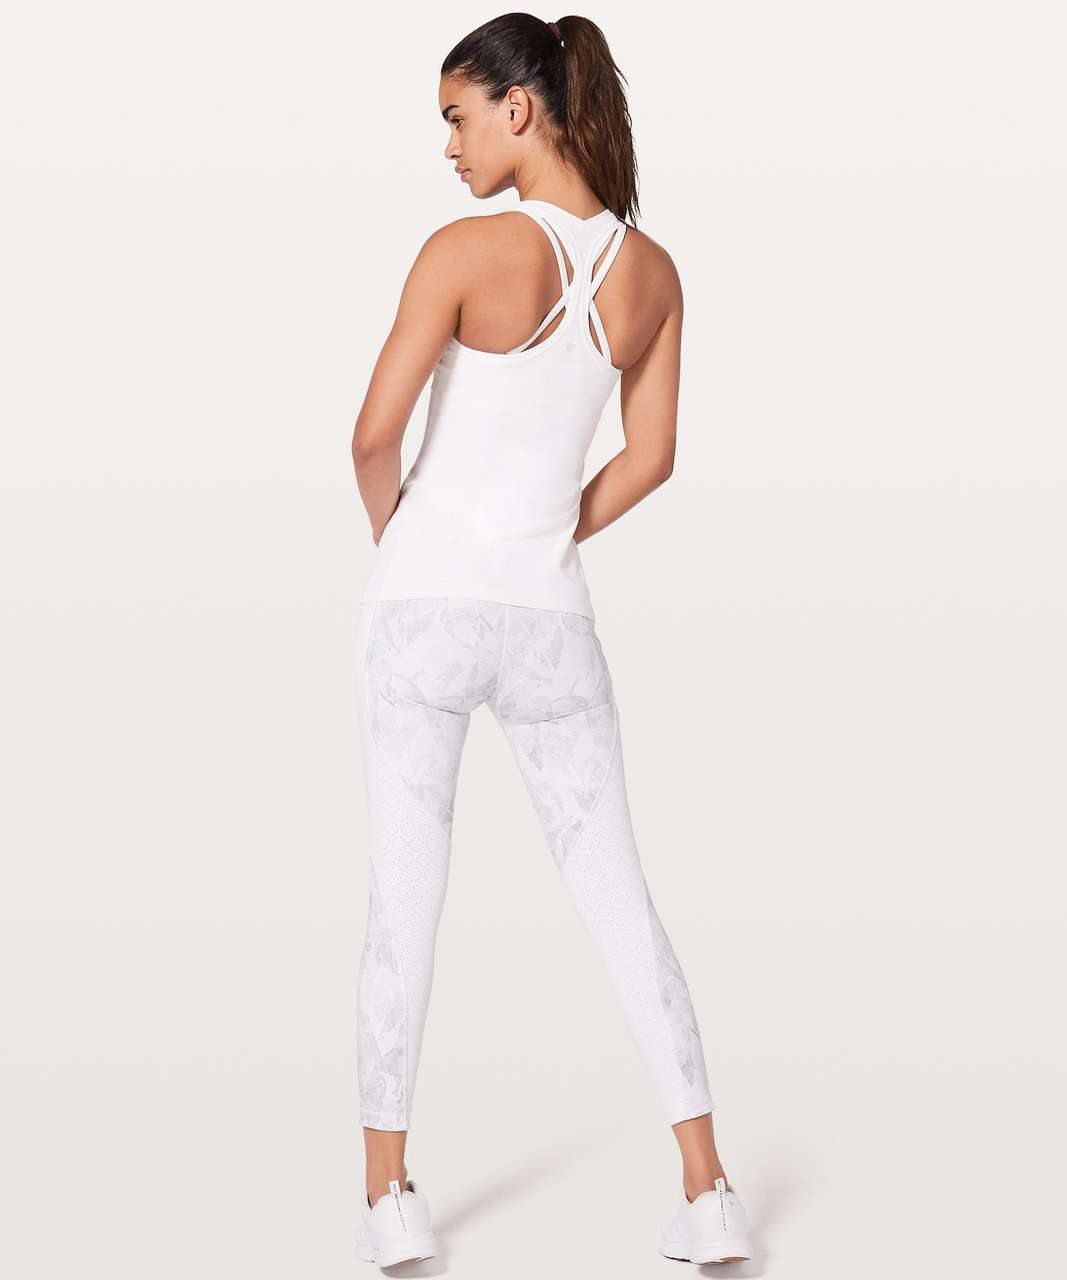 Lululemon Cool Racerback II *Nulu - White (First Release)